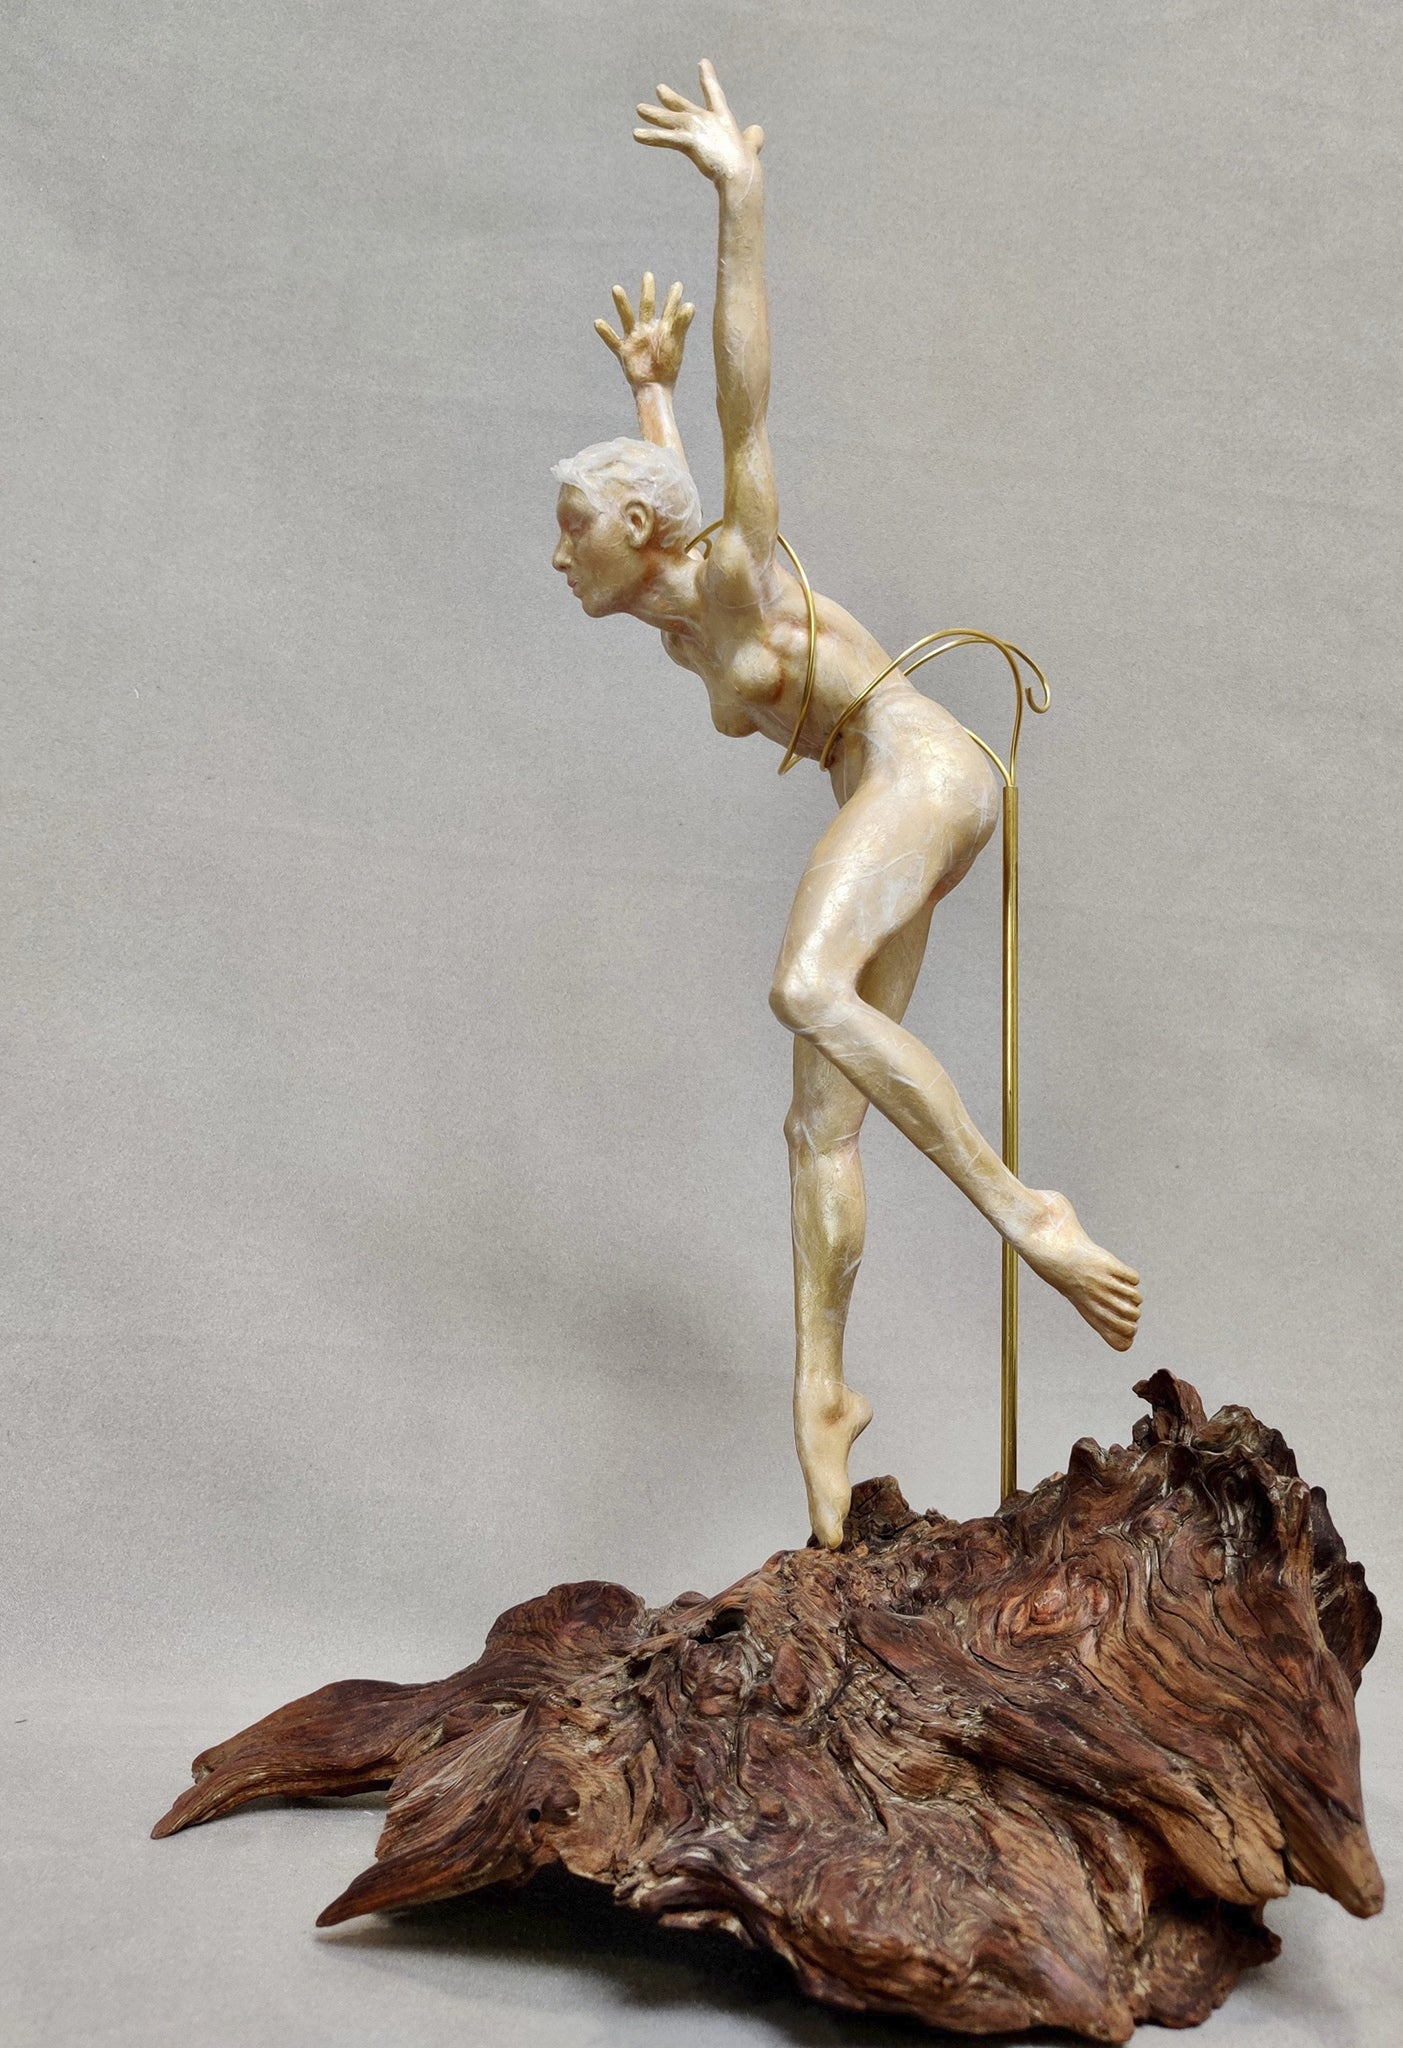 Artemis in the Wood No. 2